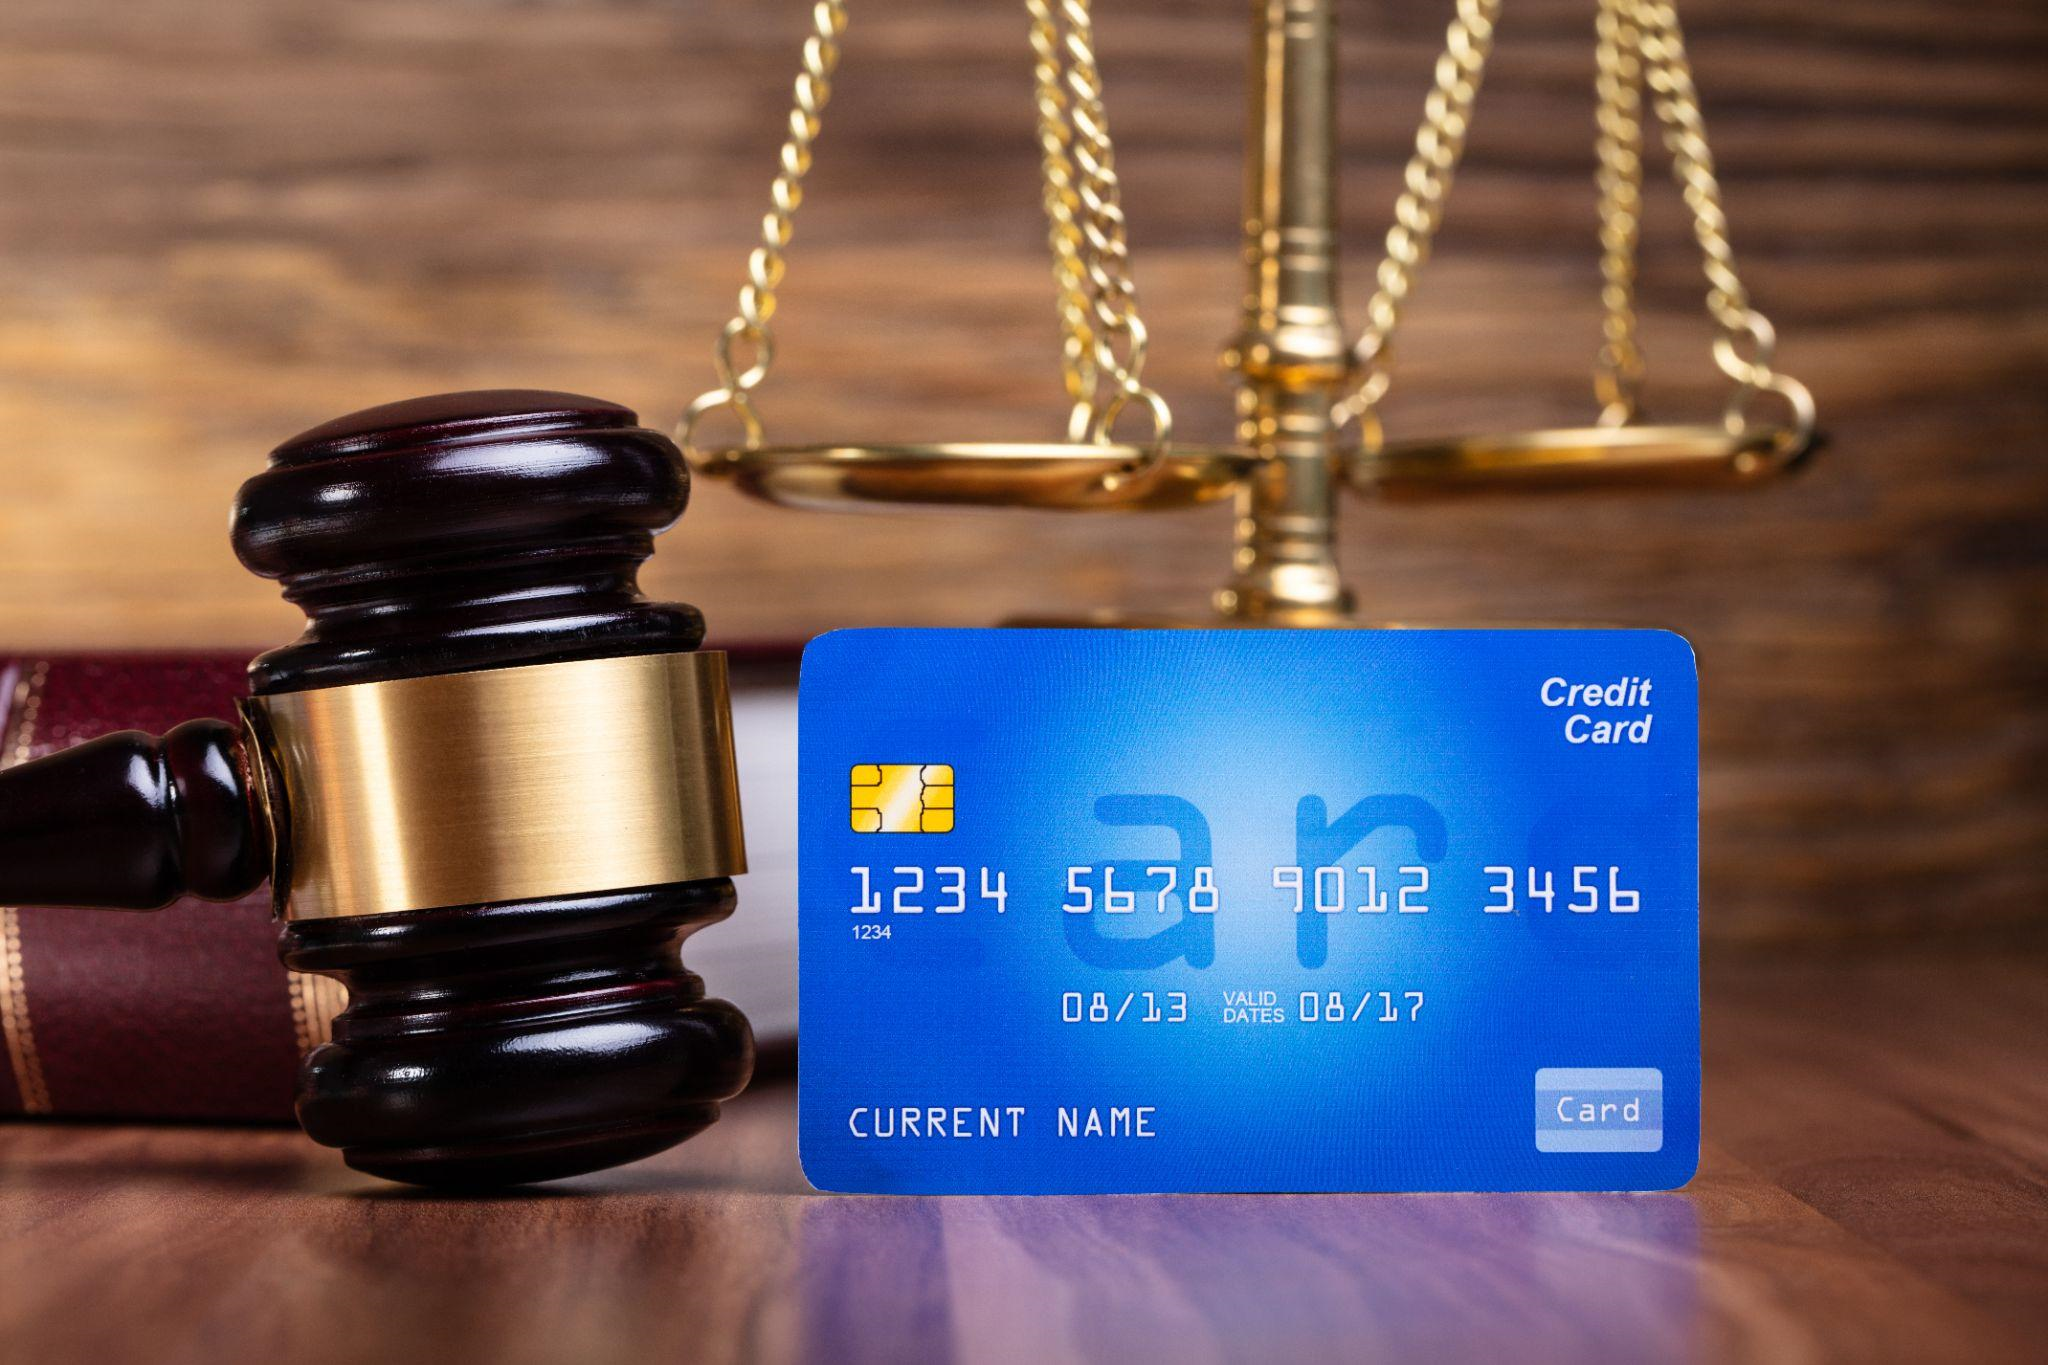 Gavel, scales of balance and credit card image